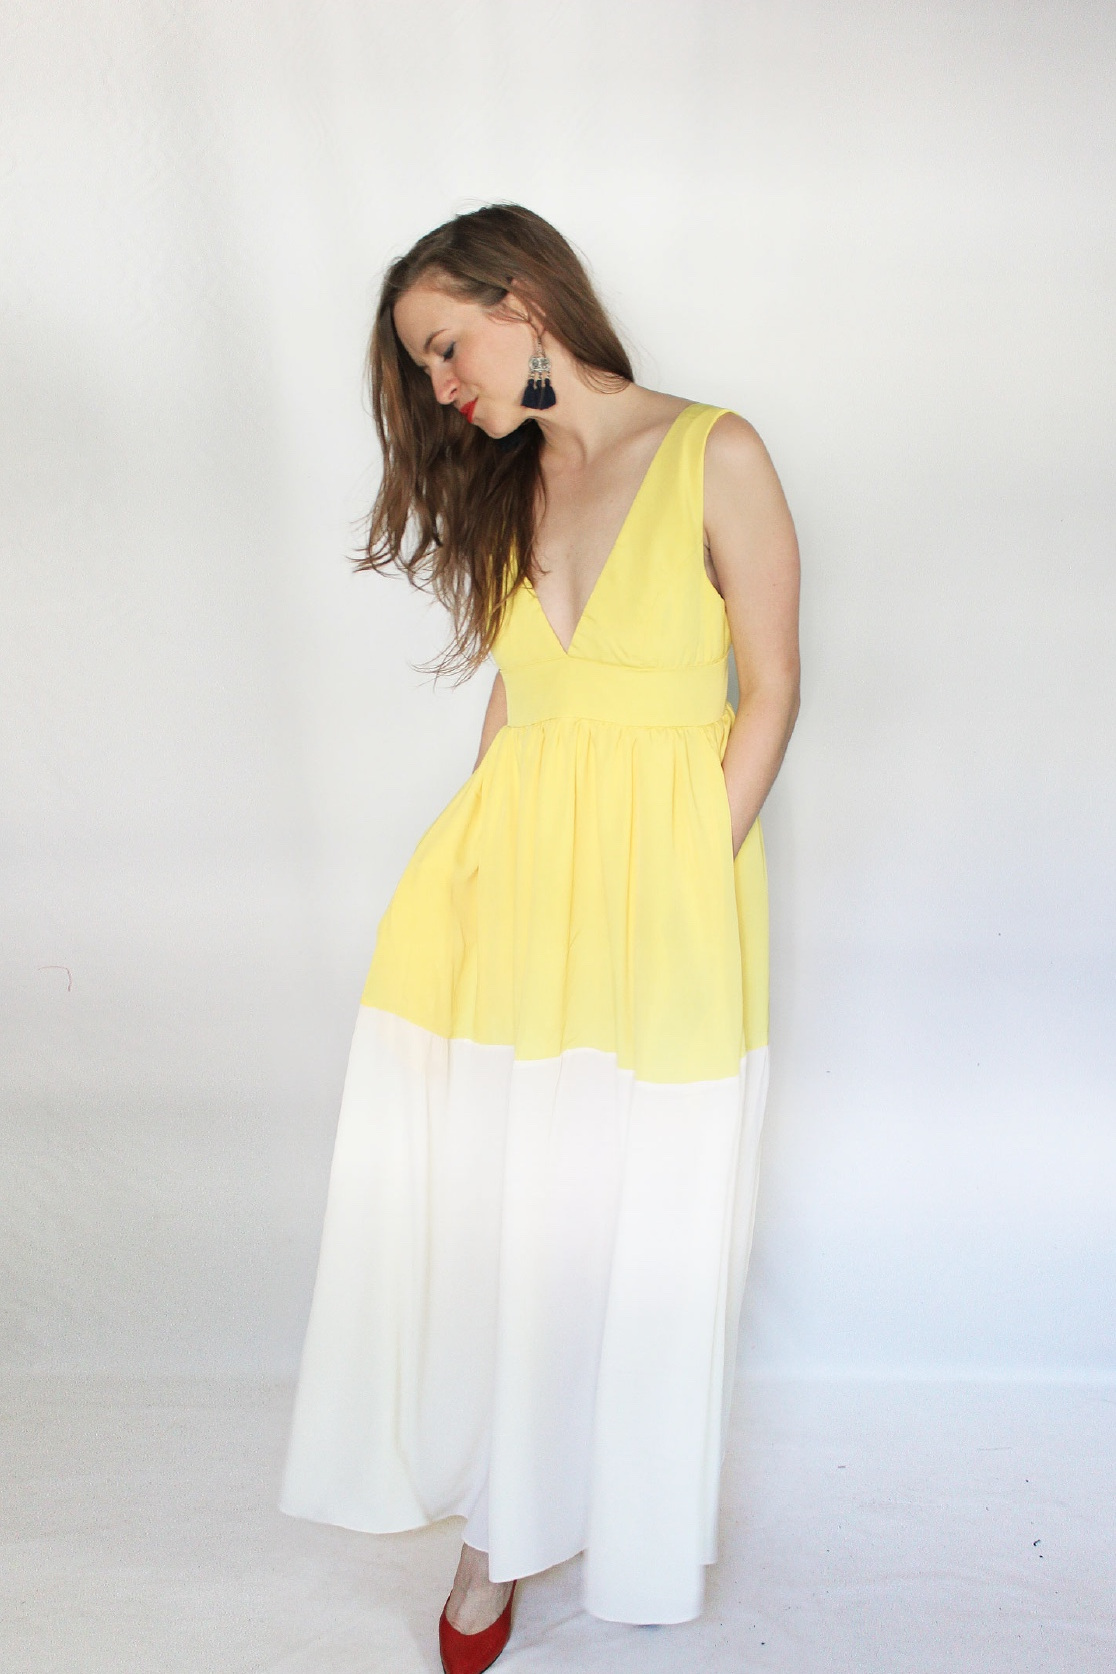 Chelsea Party Dress from Amy Nicole